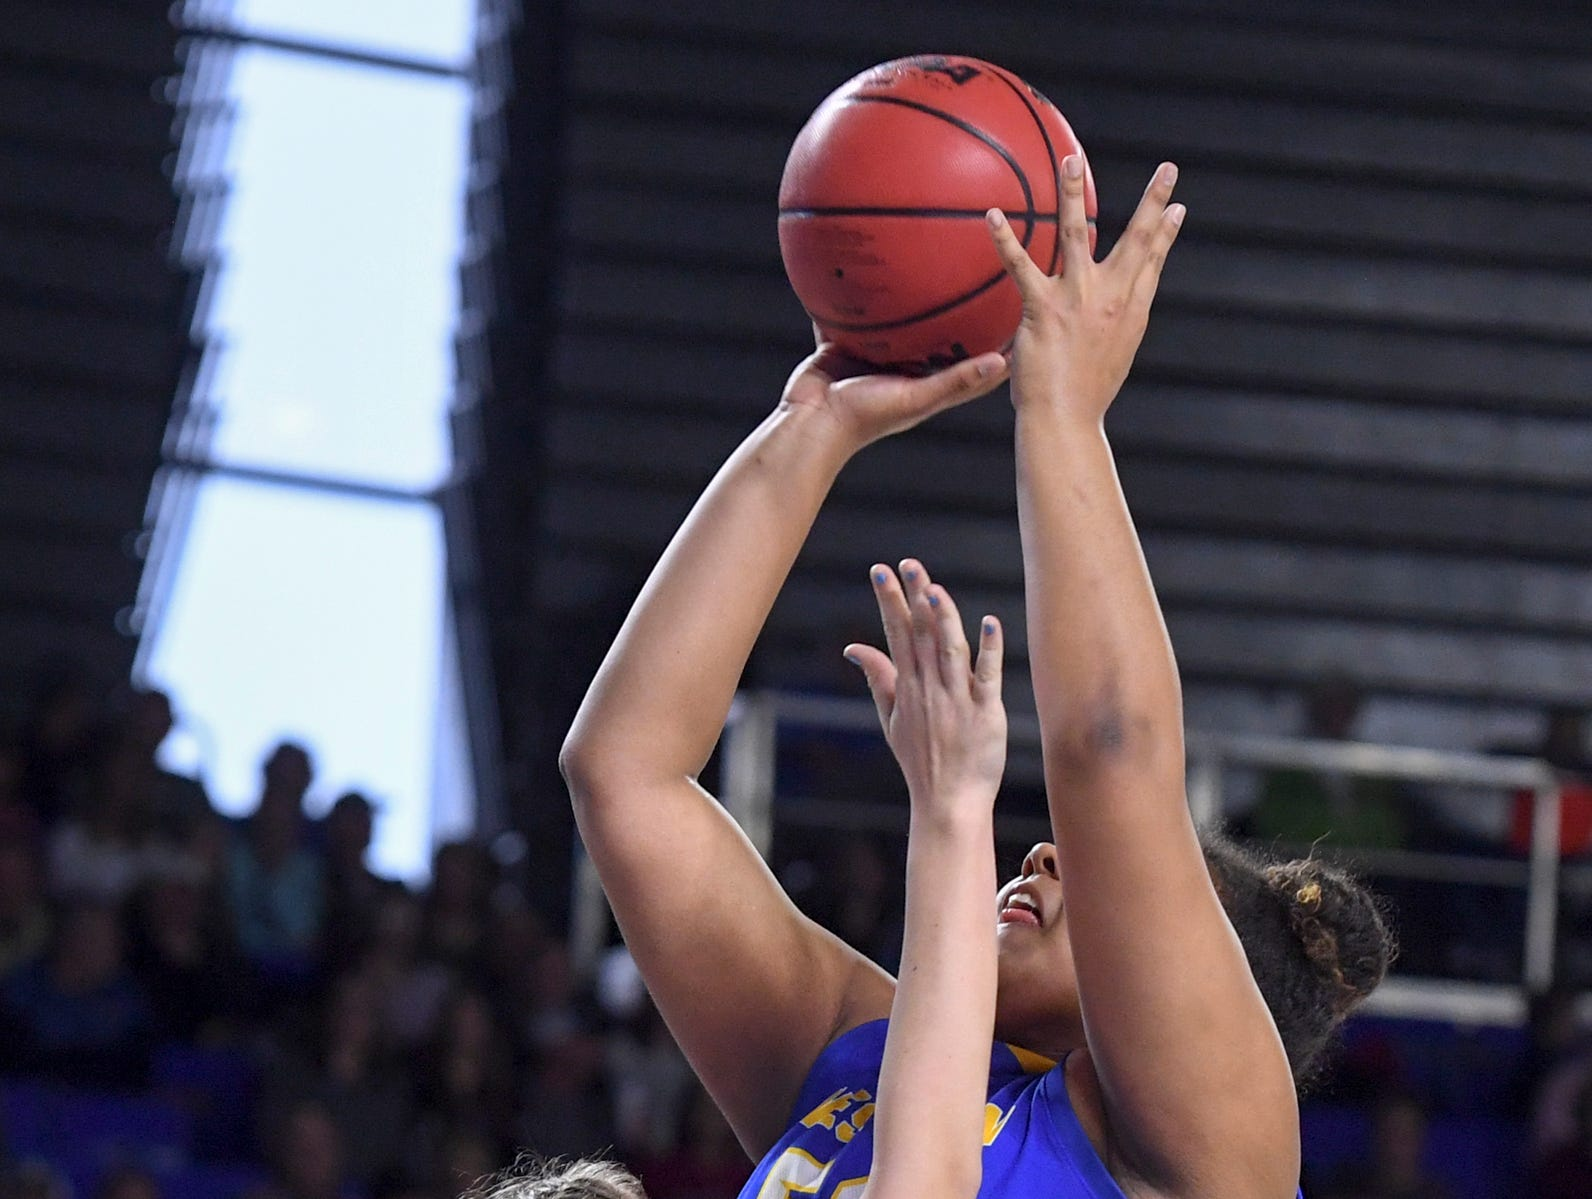 Westview's Raegan Johnson (50) goes up for a shot over Cheatham County's Alli Douglas (24) during their Class AA championship game, Saturday, March 9, 2019, in Murfreesboro. Westview fell to Cheatham County, 43-40.